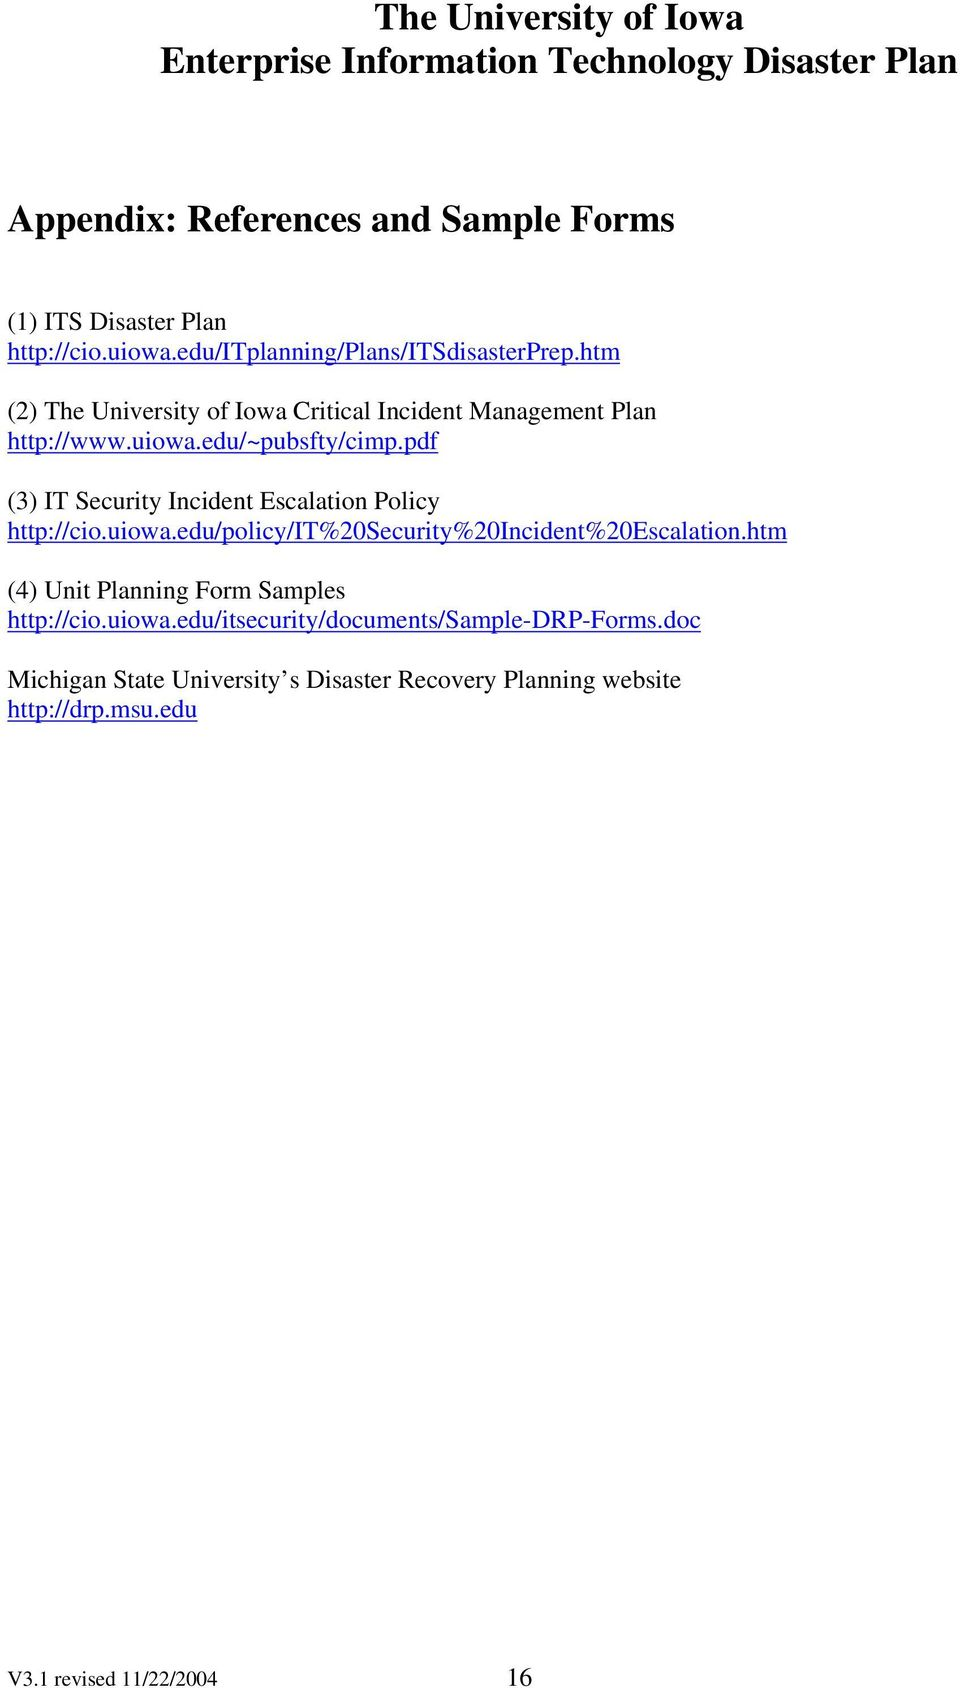 pdf (3) IT Security Incident Escalation Policy http://cio.uiowa.edu/policy/it%20security%20incident%20escalation.